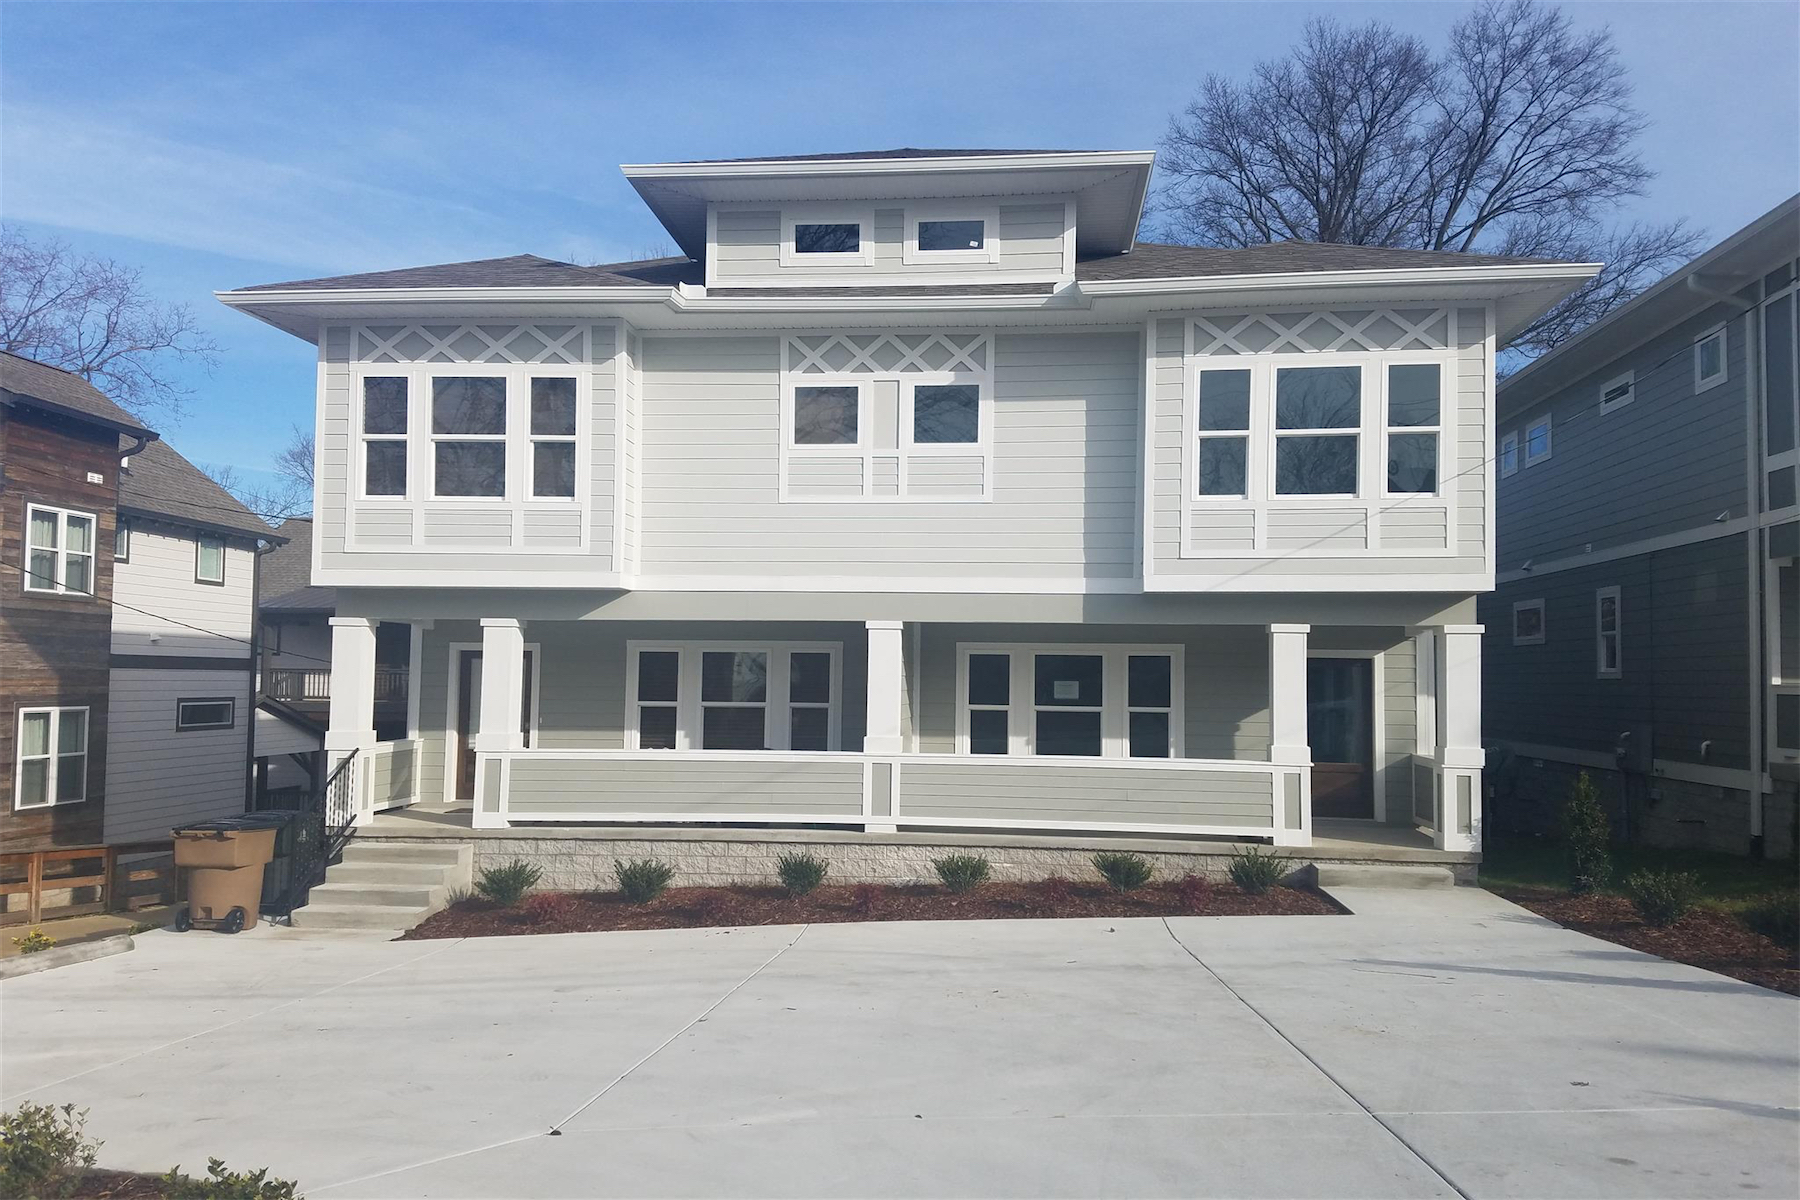 Single Family Home for Rent at Beautiful East Nashville Home 1001 B Spain Avenue Nashville, Tennessee 37216 United States